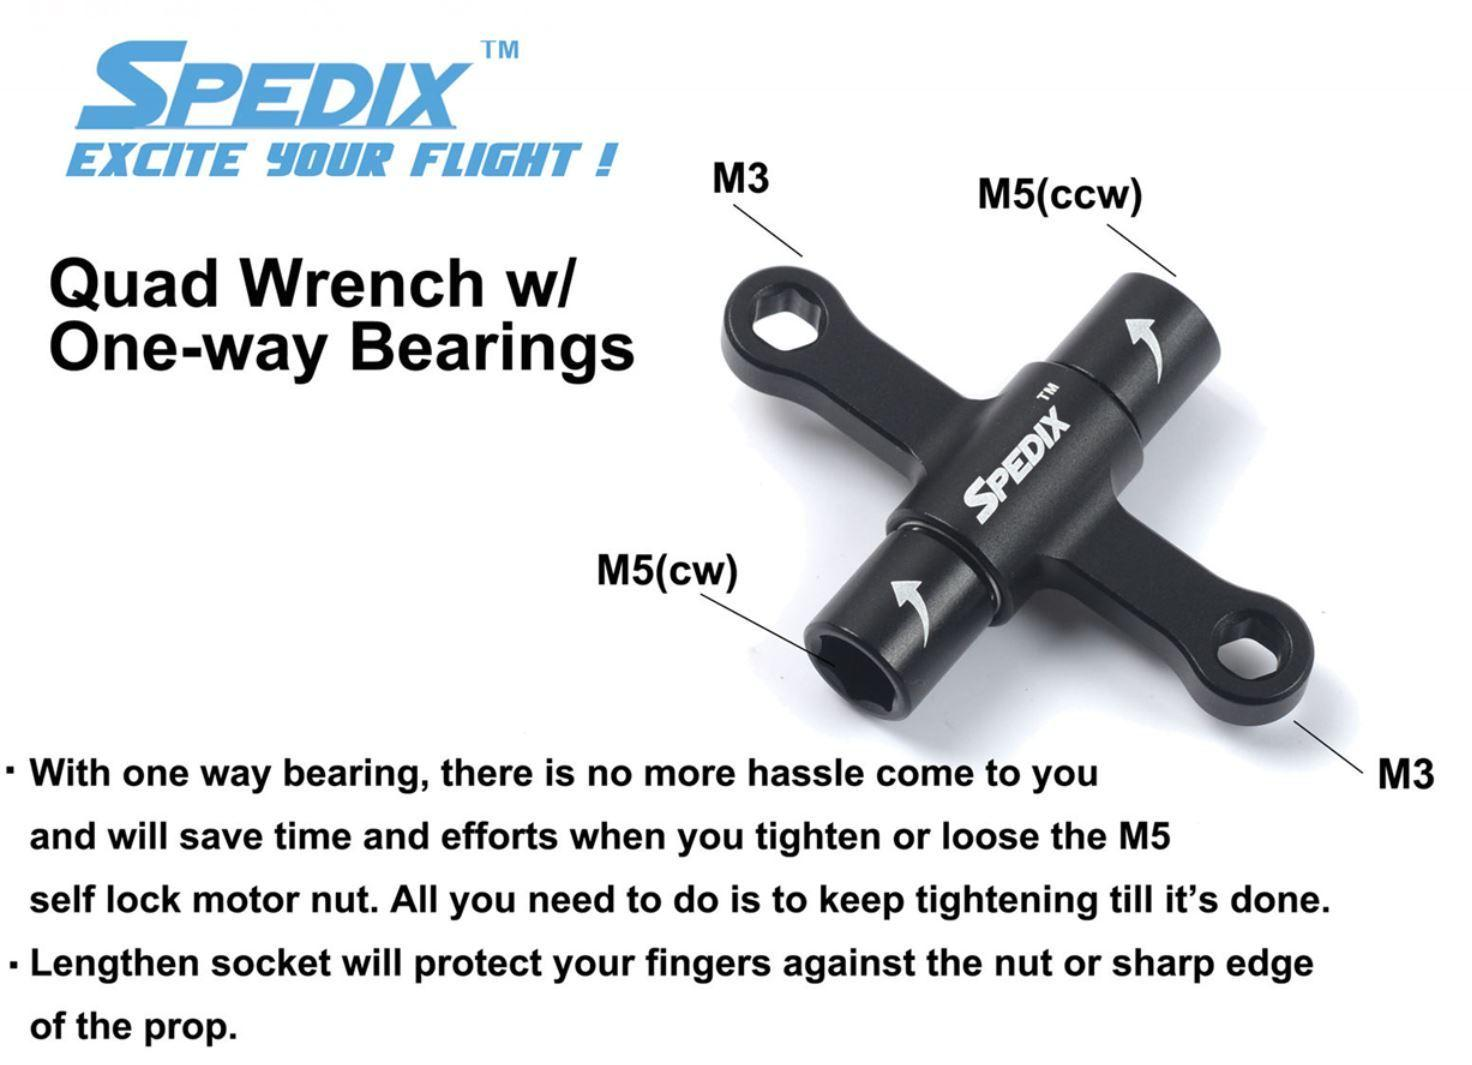 spedix-quad-wrench-tool.jpg